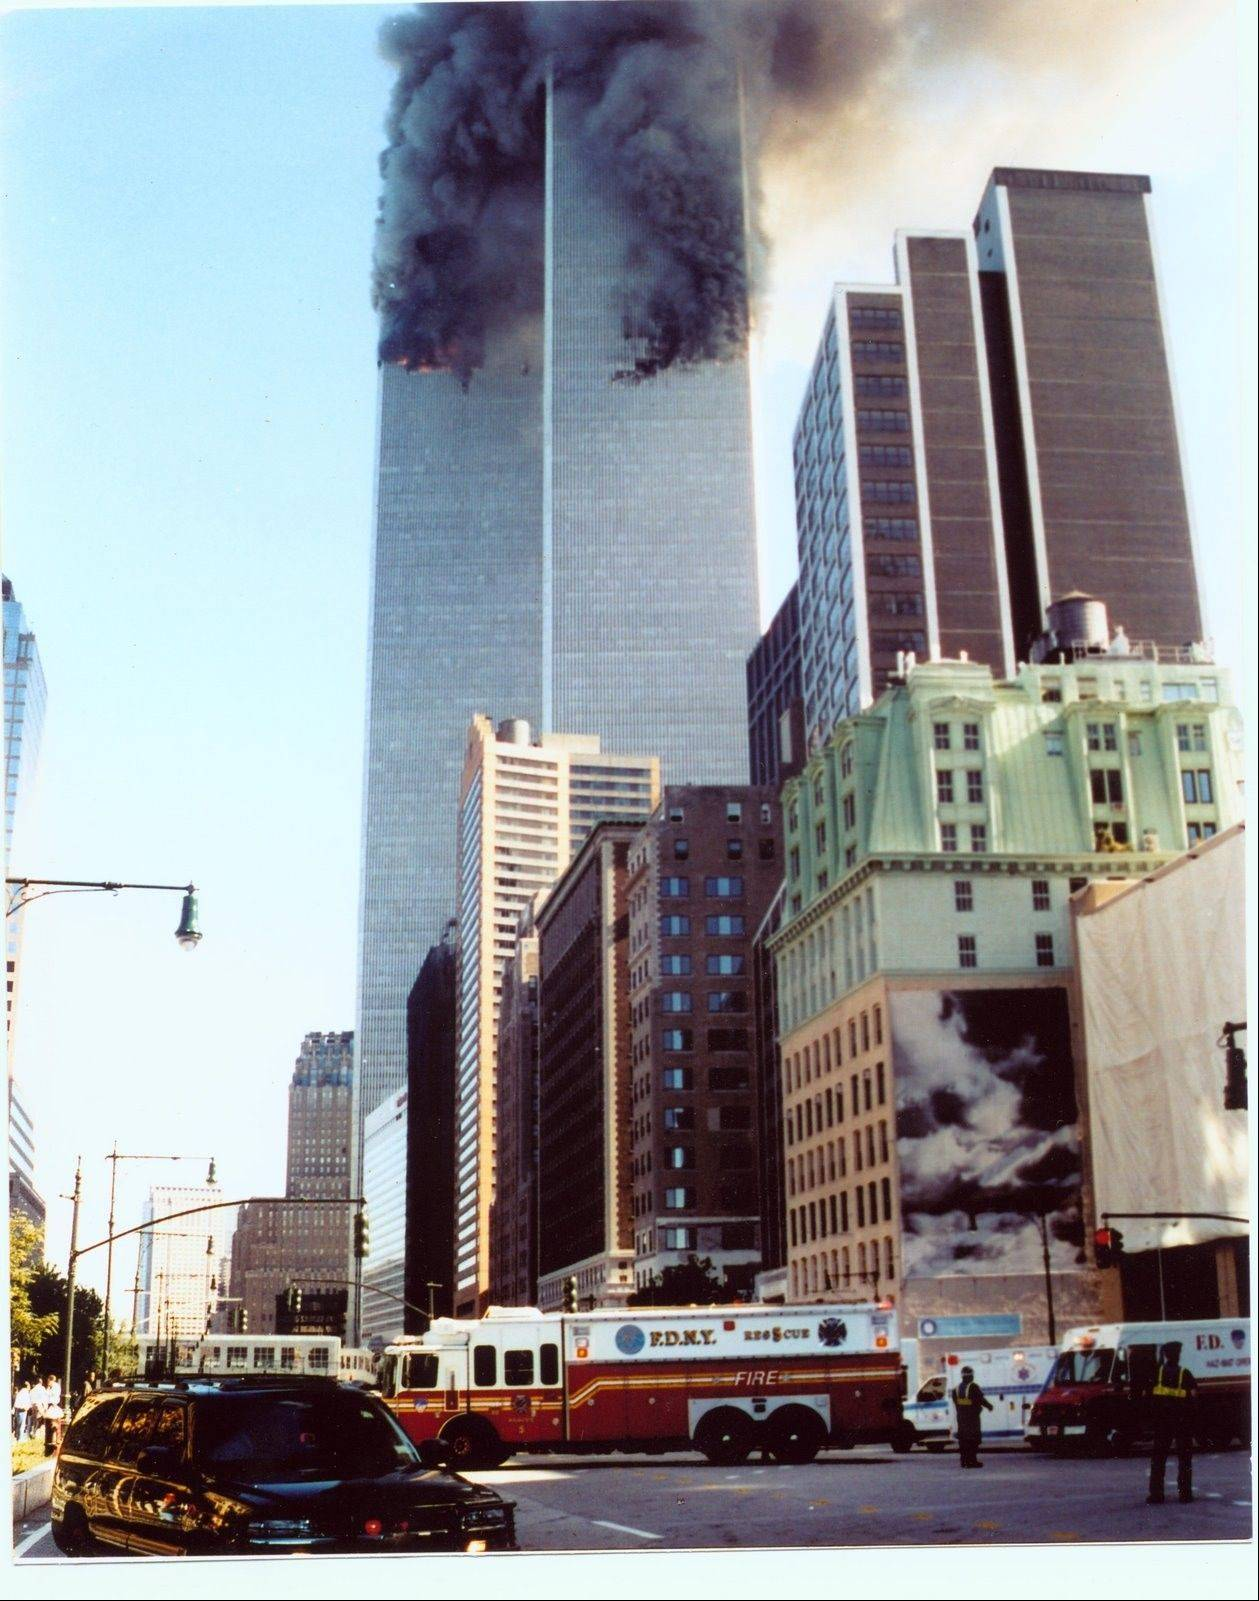 This photo shows Rescue 5 at the Sept. 11 World Trade Center attack in New York.